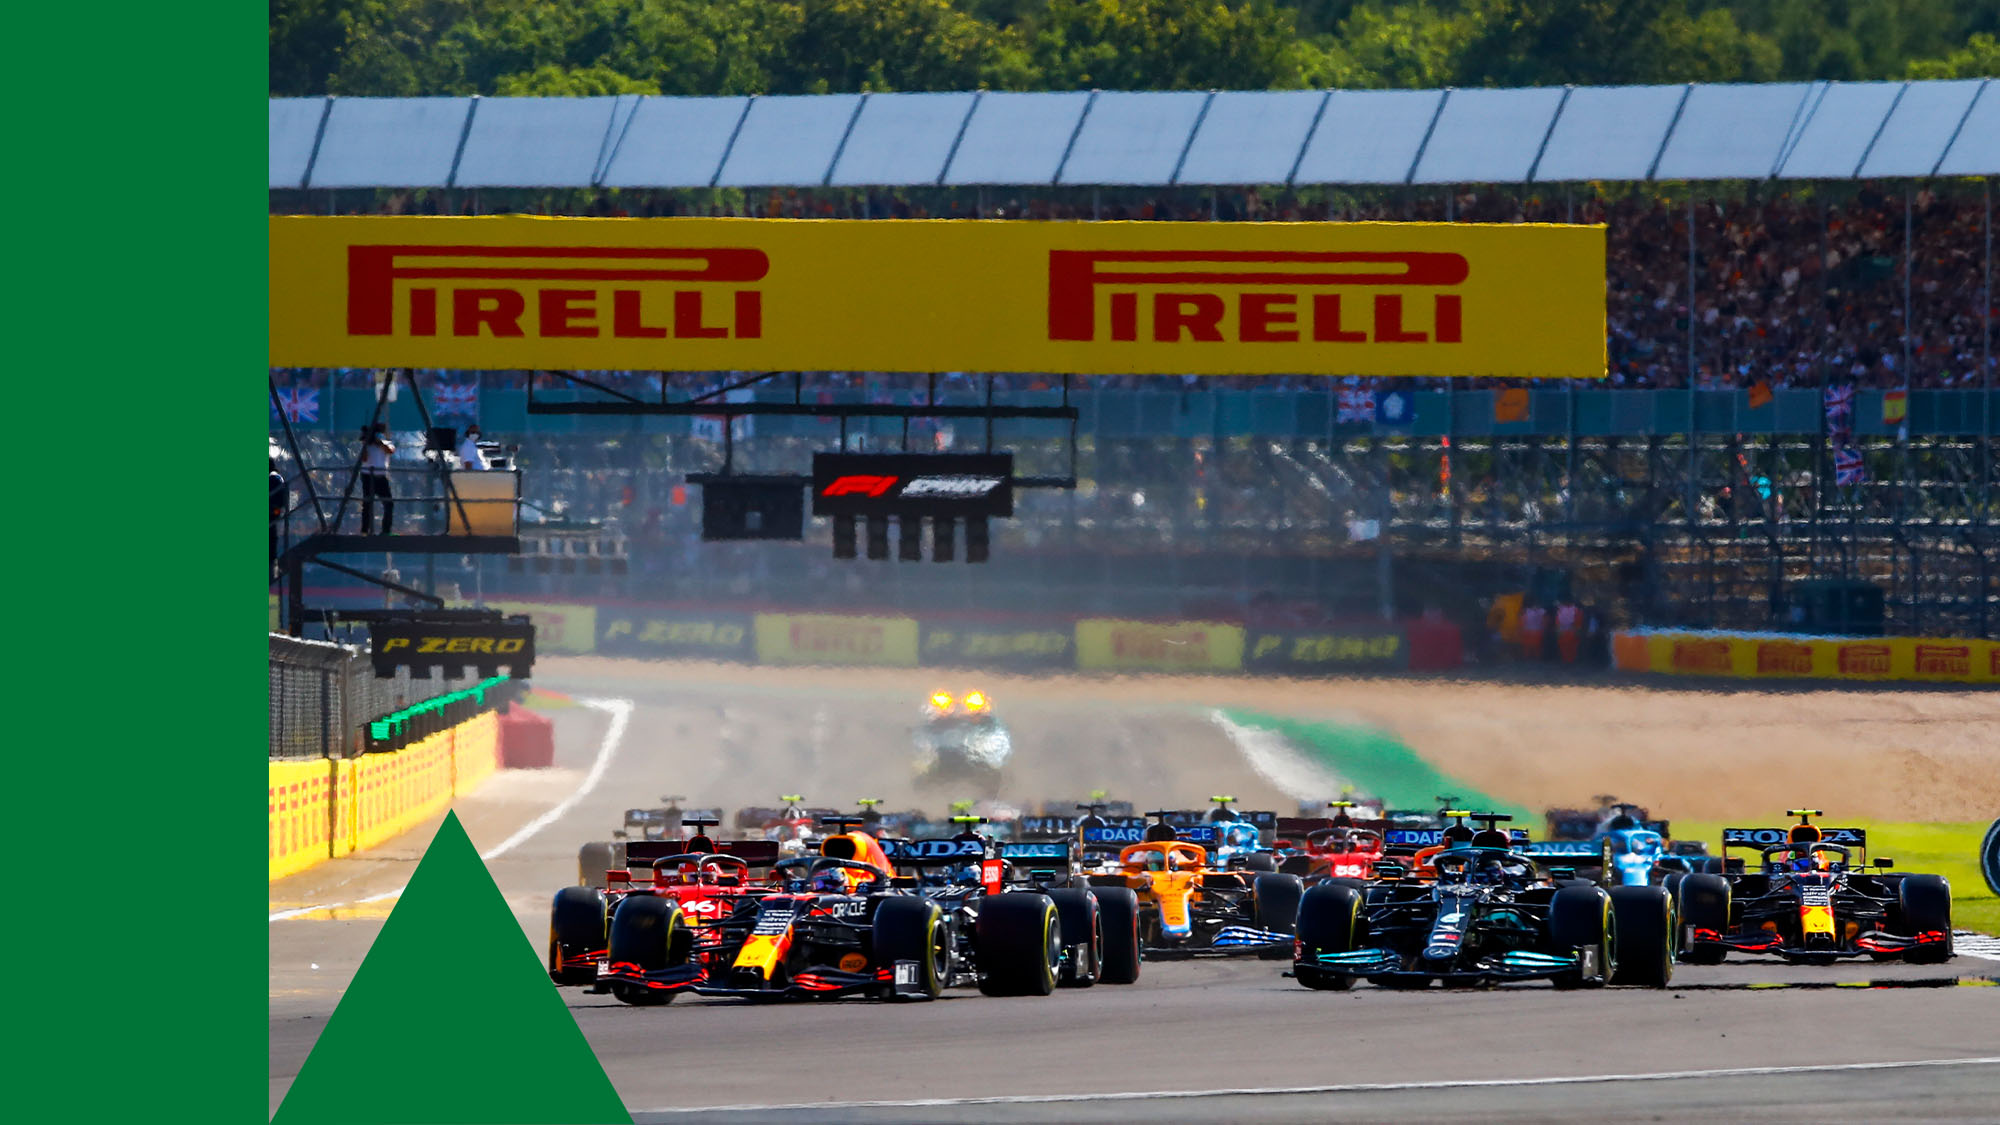 44 HAMILTON Lewis (gbr), Mercedes AMG F1 GP W12 E Performance, 33 VERSTAPPEN Max (nld), Red Bull Racing Honda RB16B, action, sprint race during the Formula 1 Pirelli British Grand Prix 2021, 10th round of the 2021 FIA Formula One World Championship from July 16 to 18, 2021 on the Silverstone Circuit, in Silverstone, United Kingdom - Photo Xavi Bonilla / DPPI